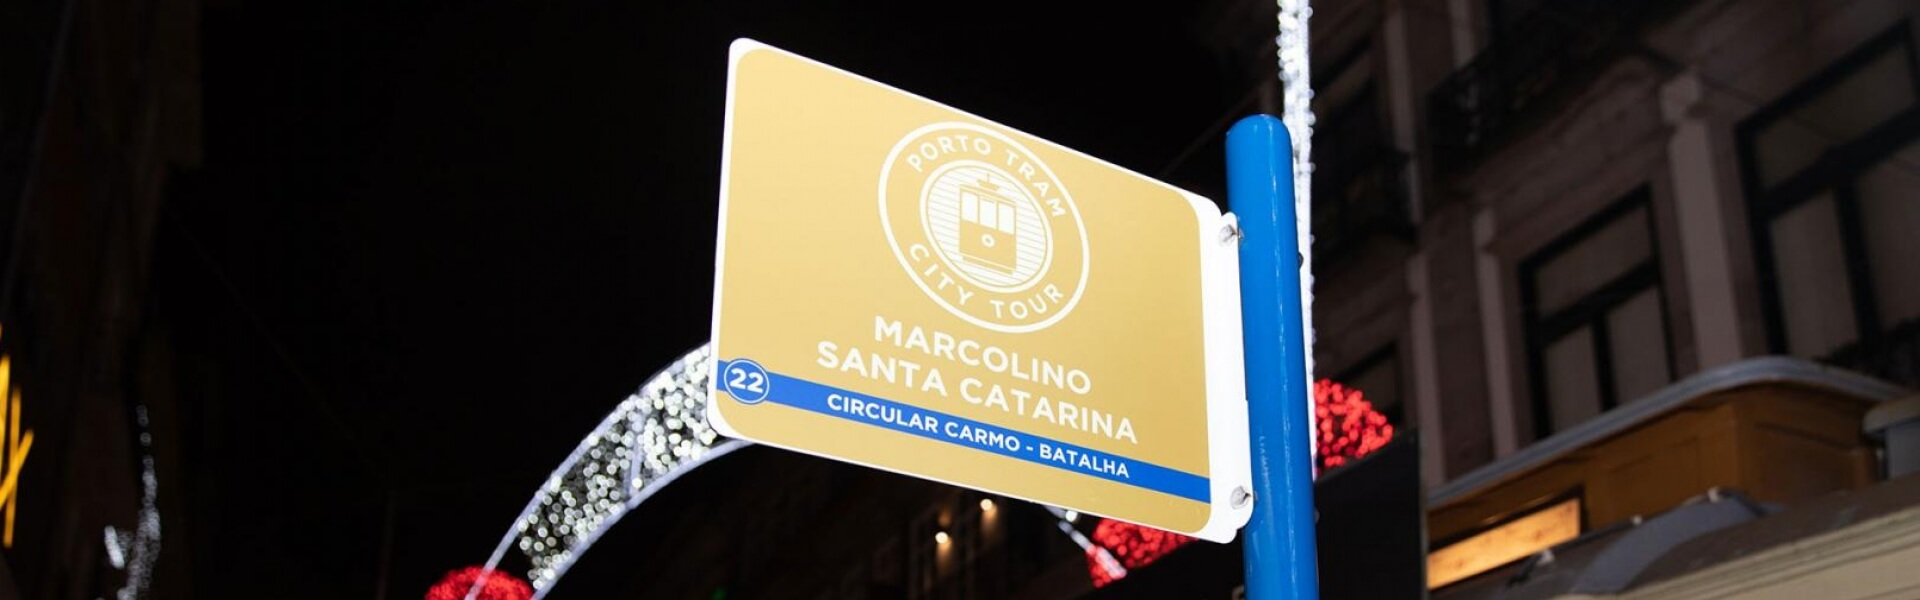 """Marcolino inaugurated on 12/14/19, through its ambassador, the actor Diogo Morgado, its tram sign that marks the official stop with the name """"Marcolino"""" in the street of santa catarina. So you can come to us by tram and stop next to our store."""